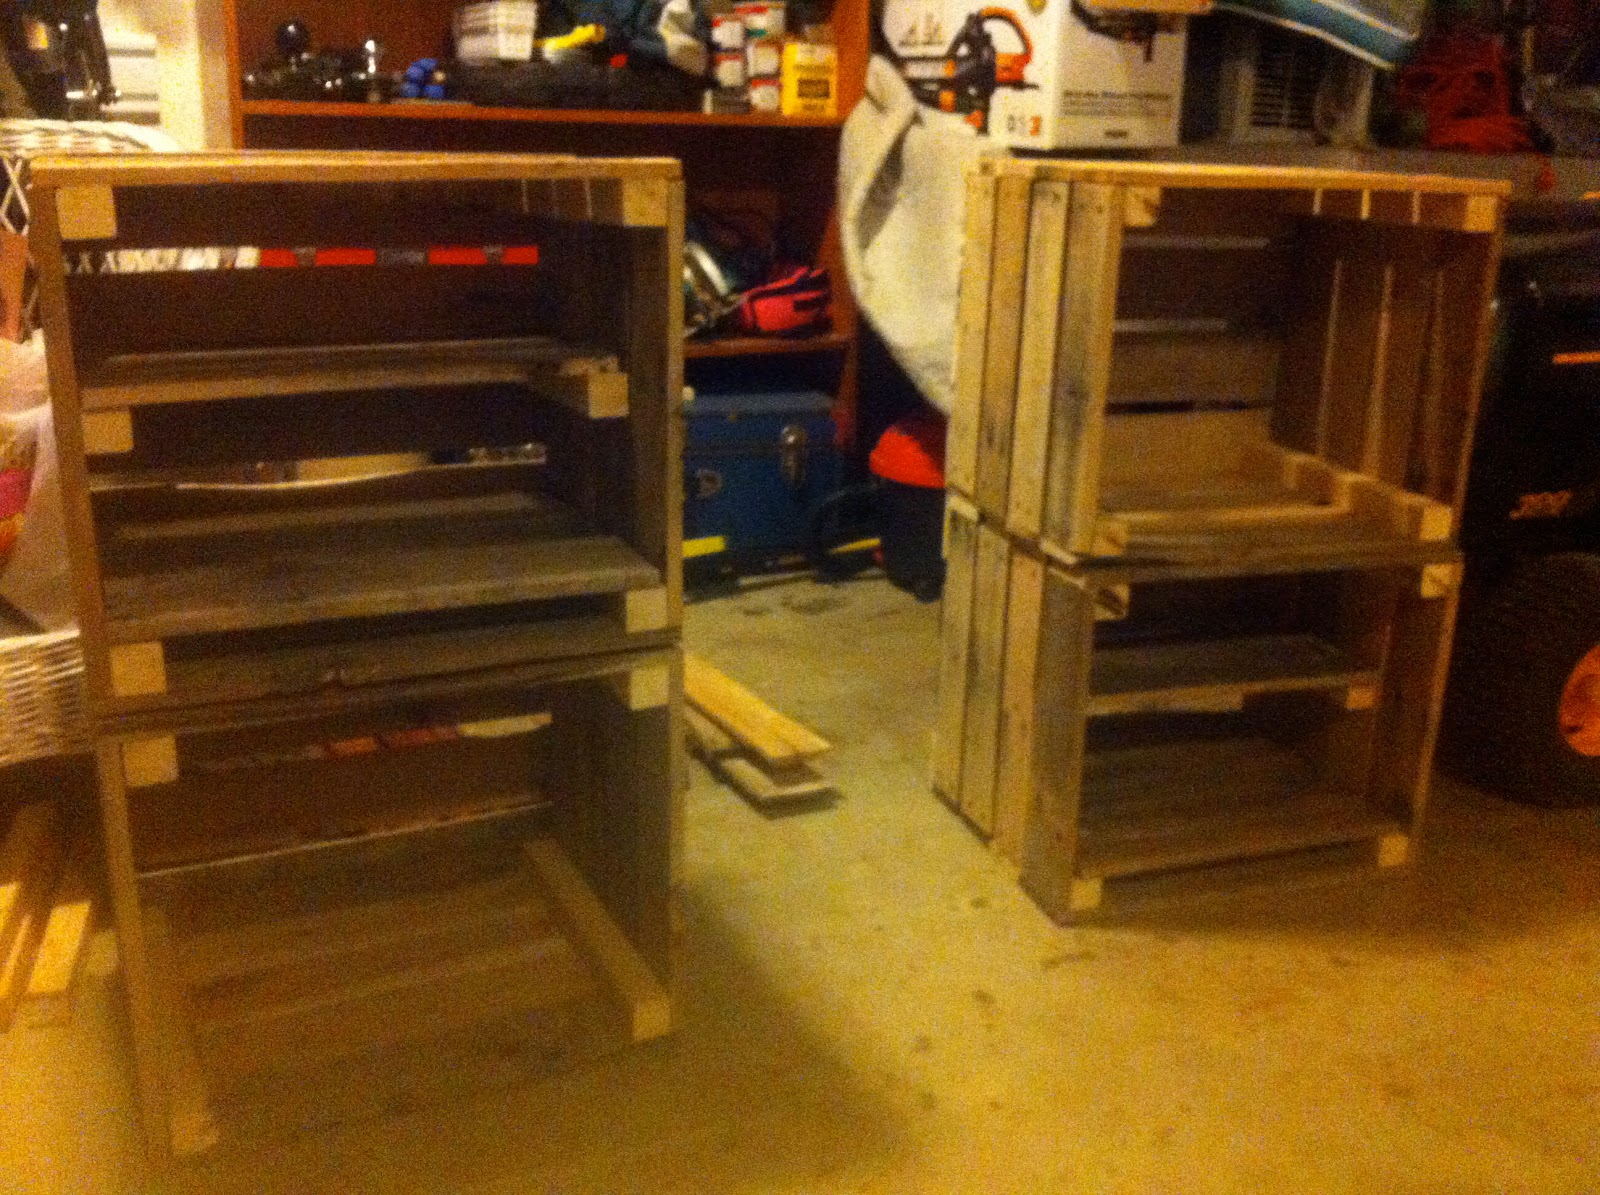 From Shipping Pallets To Record Crates Upcycling Creations Turning Trash Into Treasure